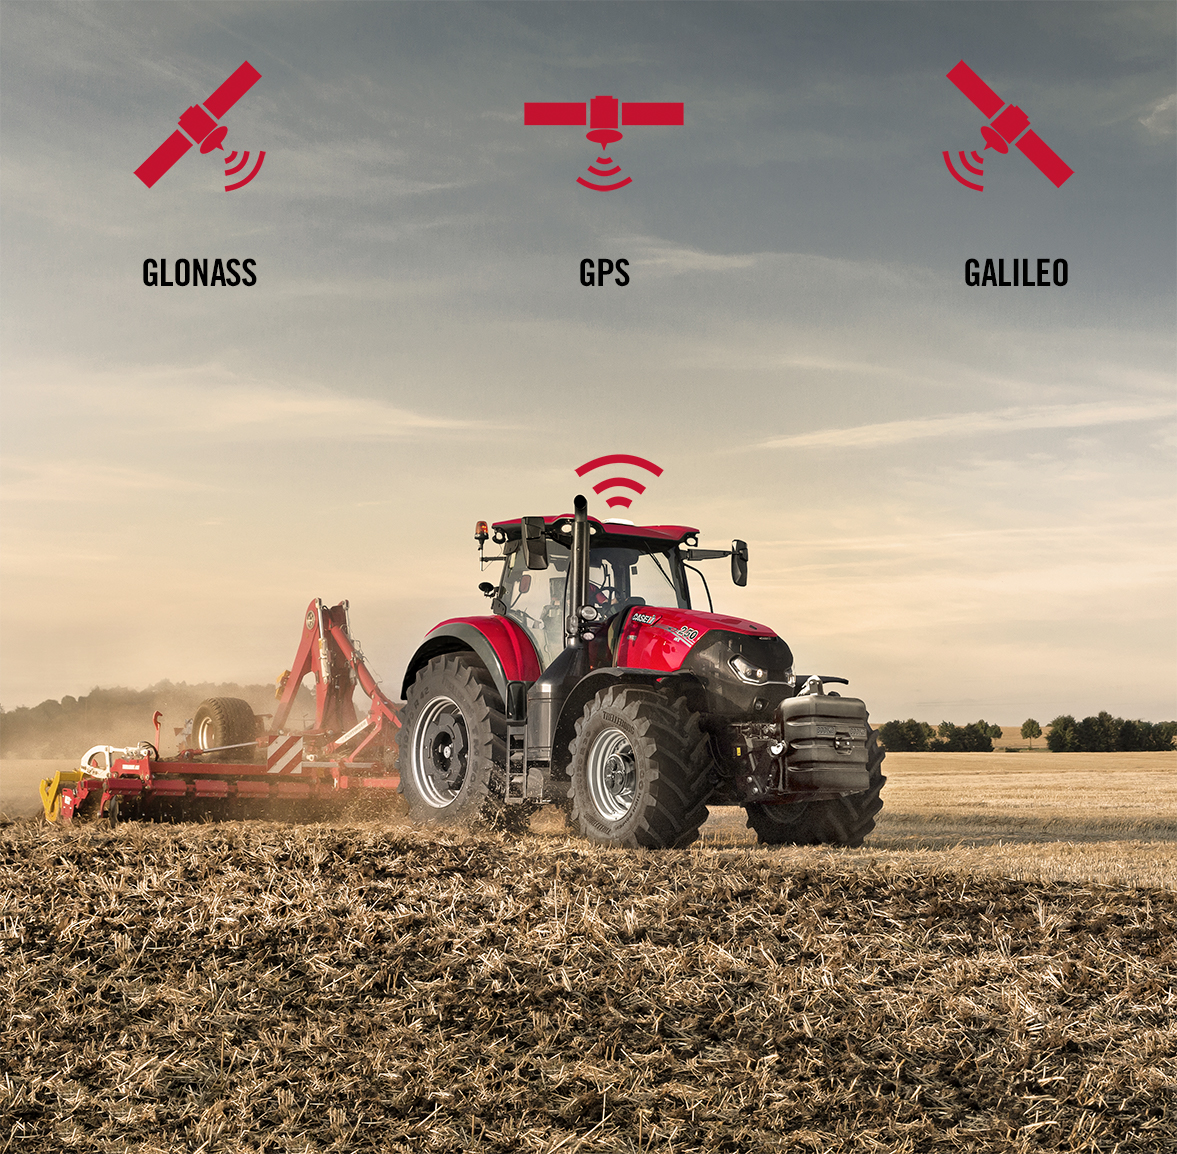 CNHi machinery manufacturer is now Galileo capable through Case IH